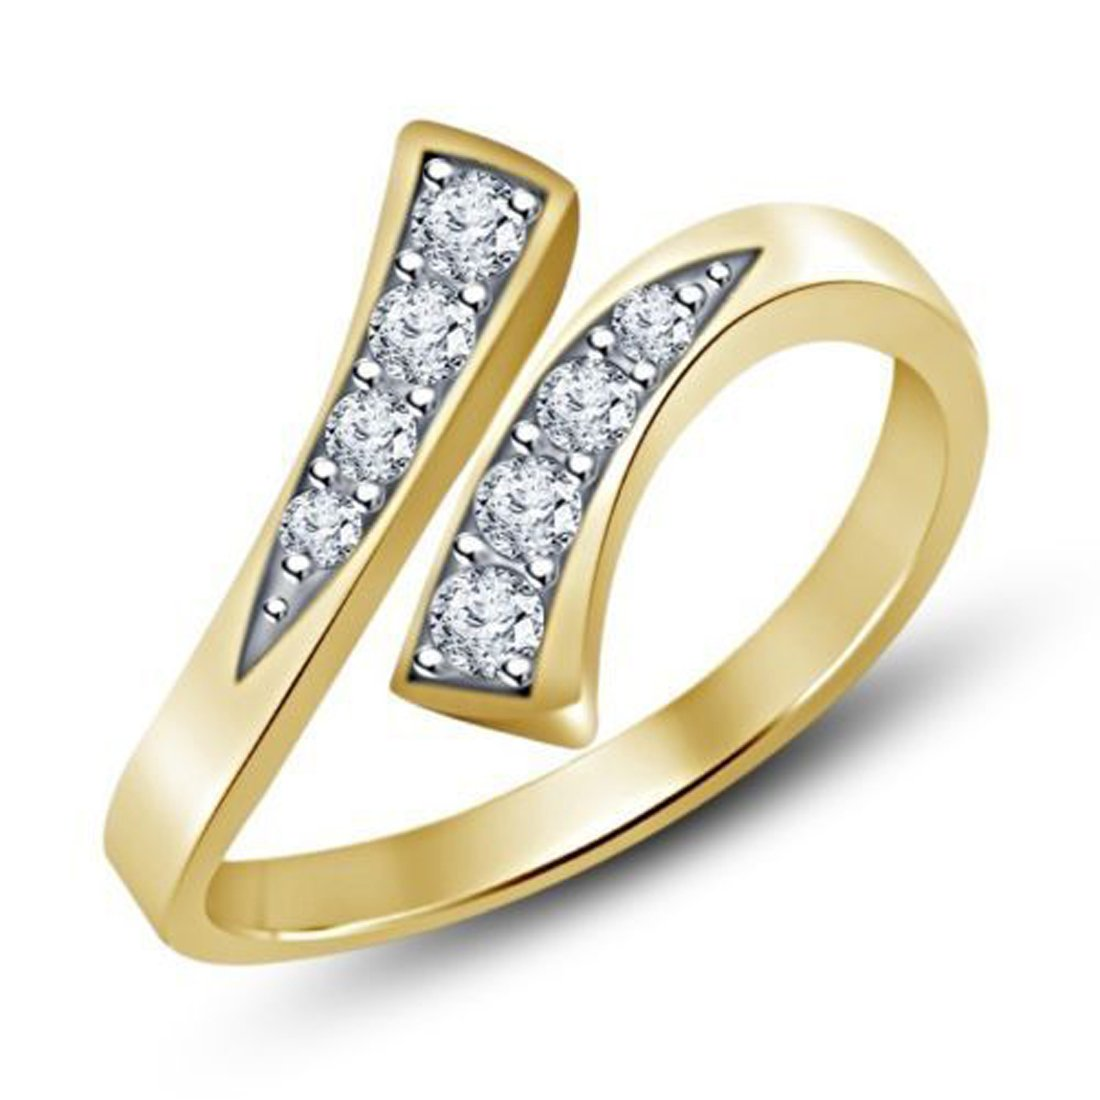 EternalDia 925 Sterling Silver Simulated D/VVS1 Diamond Adjustable Bypass Toe Ring For Womens